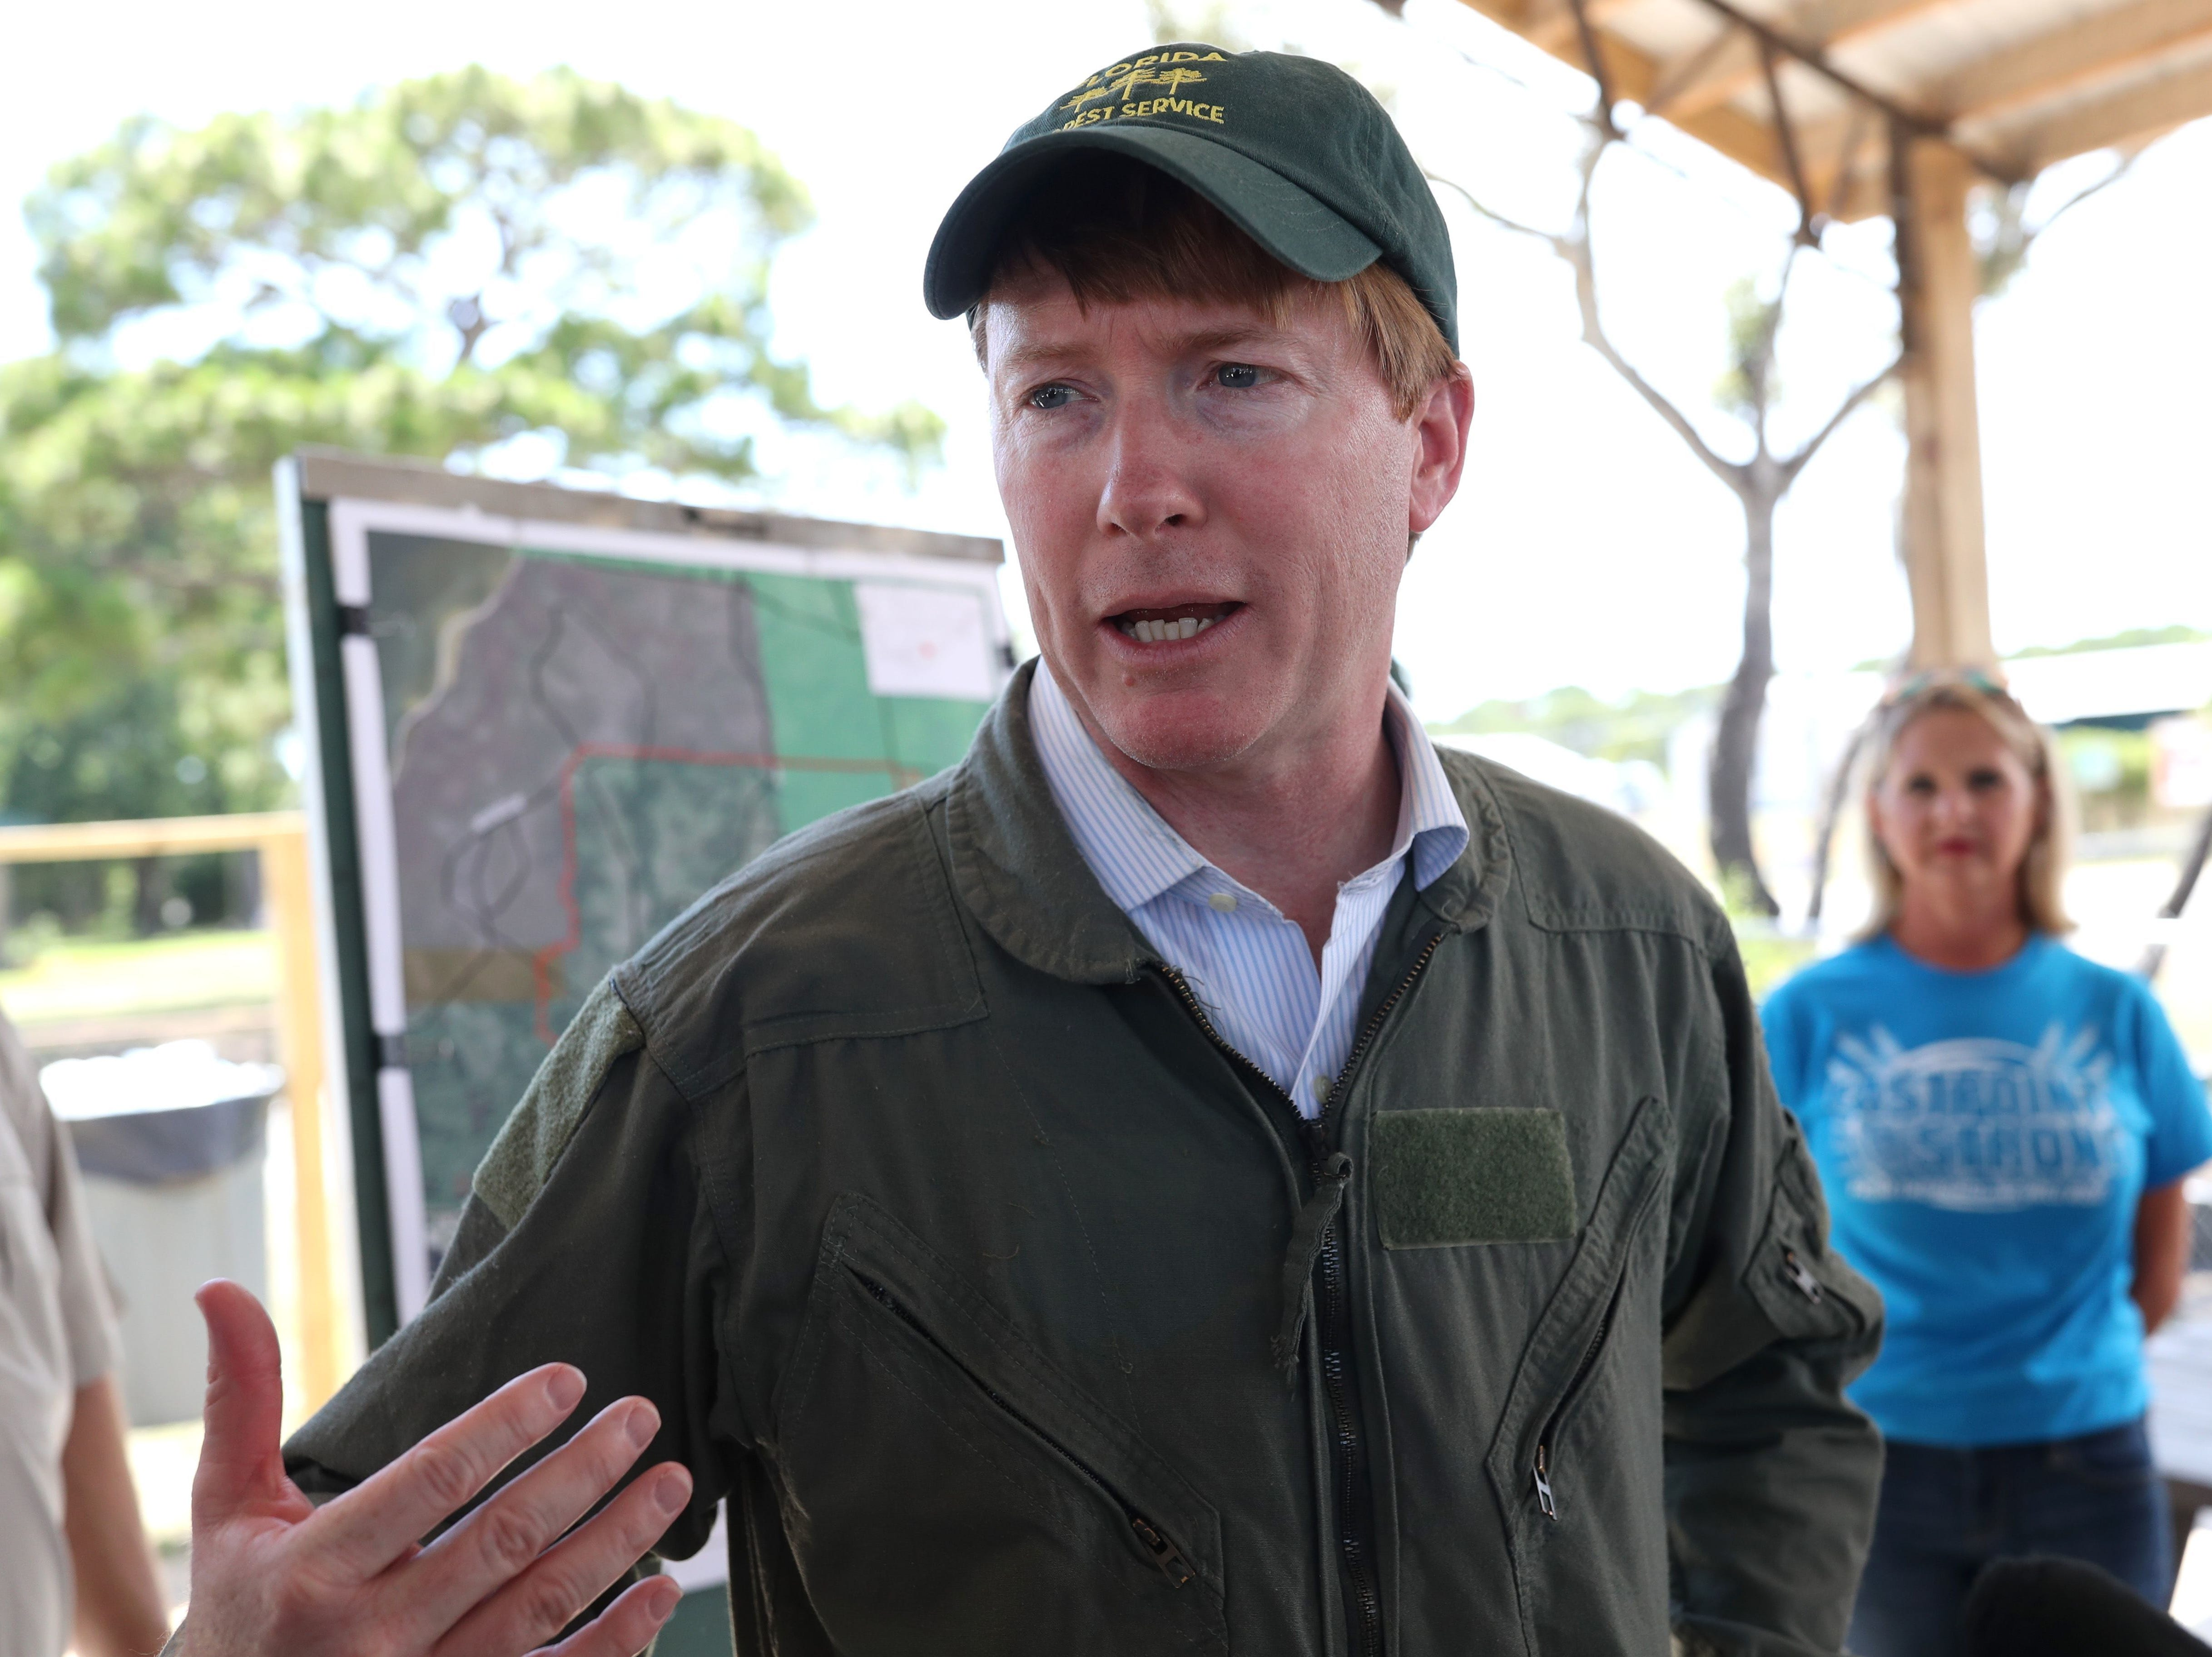 Florida Commissioner of Agriculture Adam Putnam talks about the Eastpoint wildfire that devastated the area, destroying 36 homes and damaging four more in the coastal Florida town.